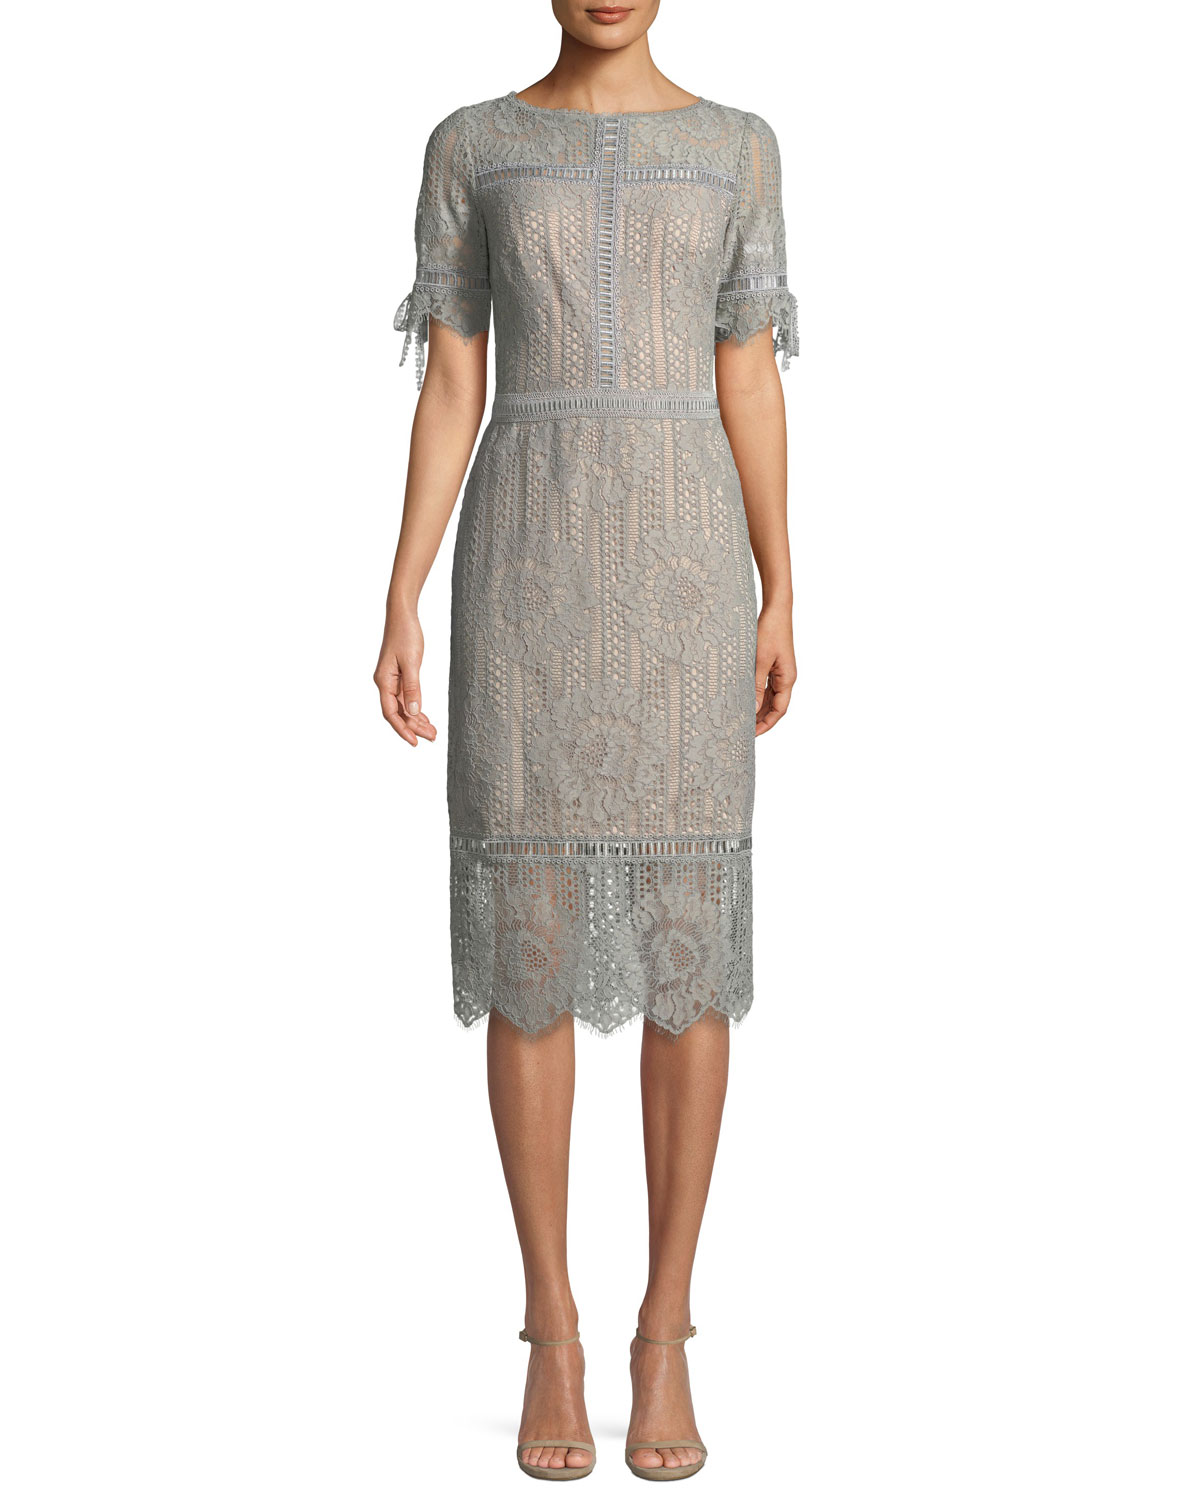 Tadashi Shoji Short-Sleeve Lace Sheath Dress | Neiman Marcus